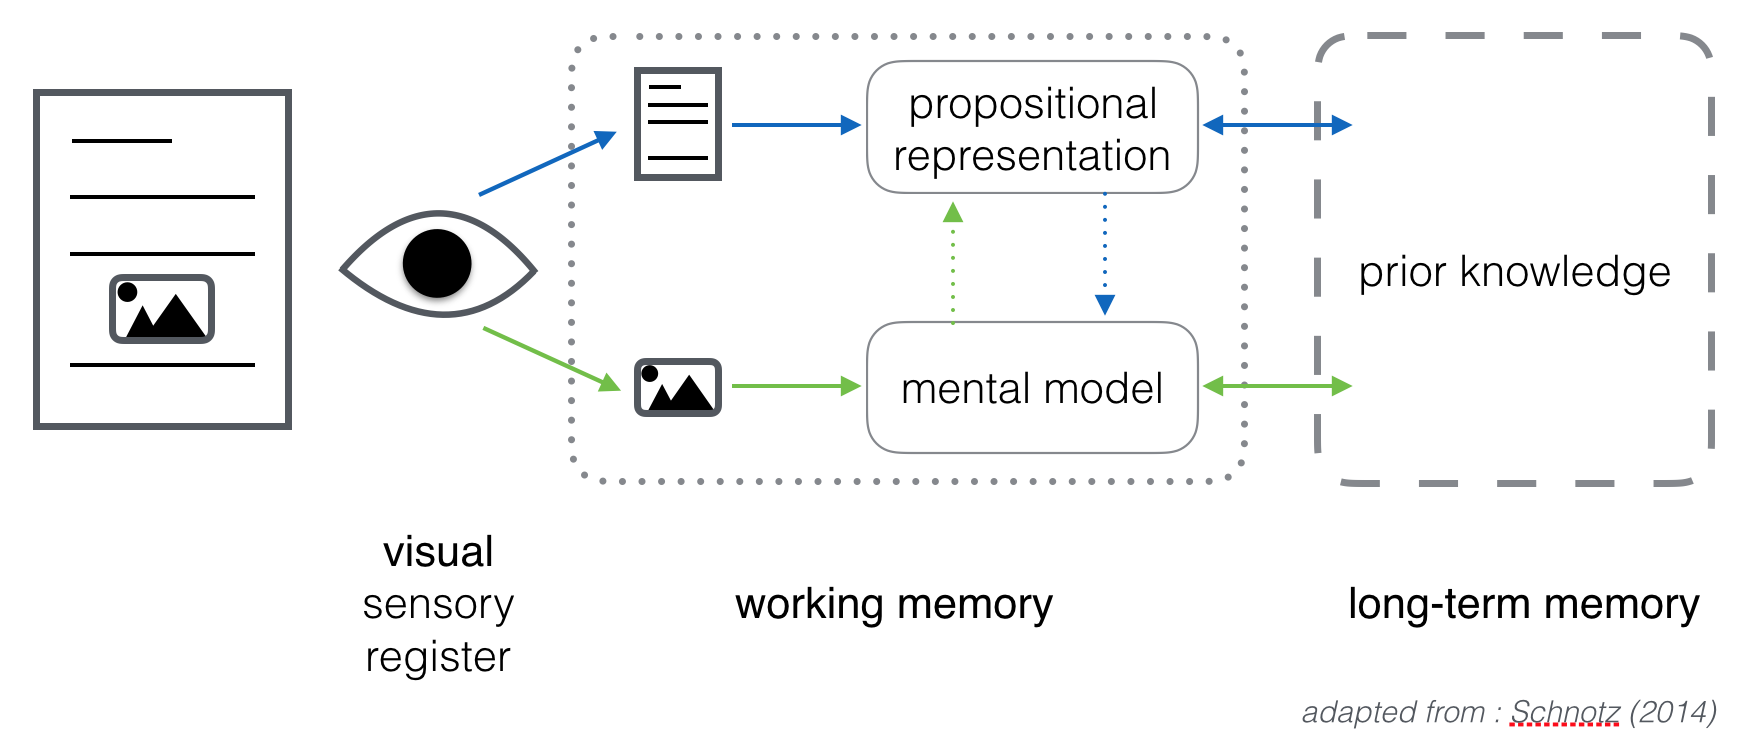 Visual Processing adapted from Schnotz (2014)